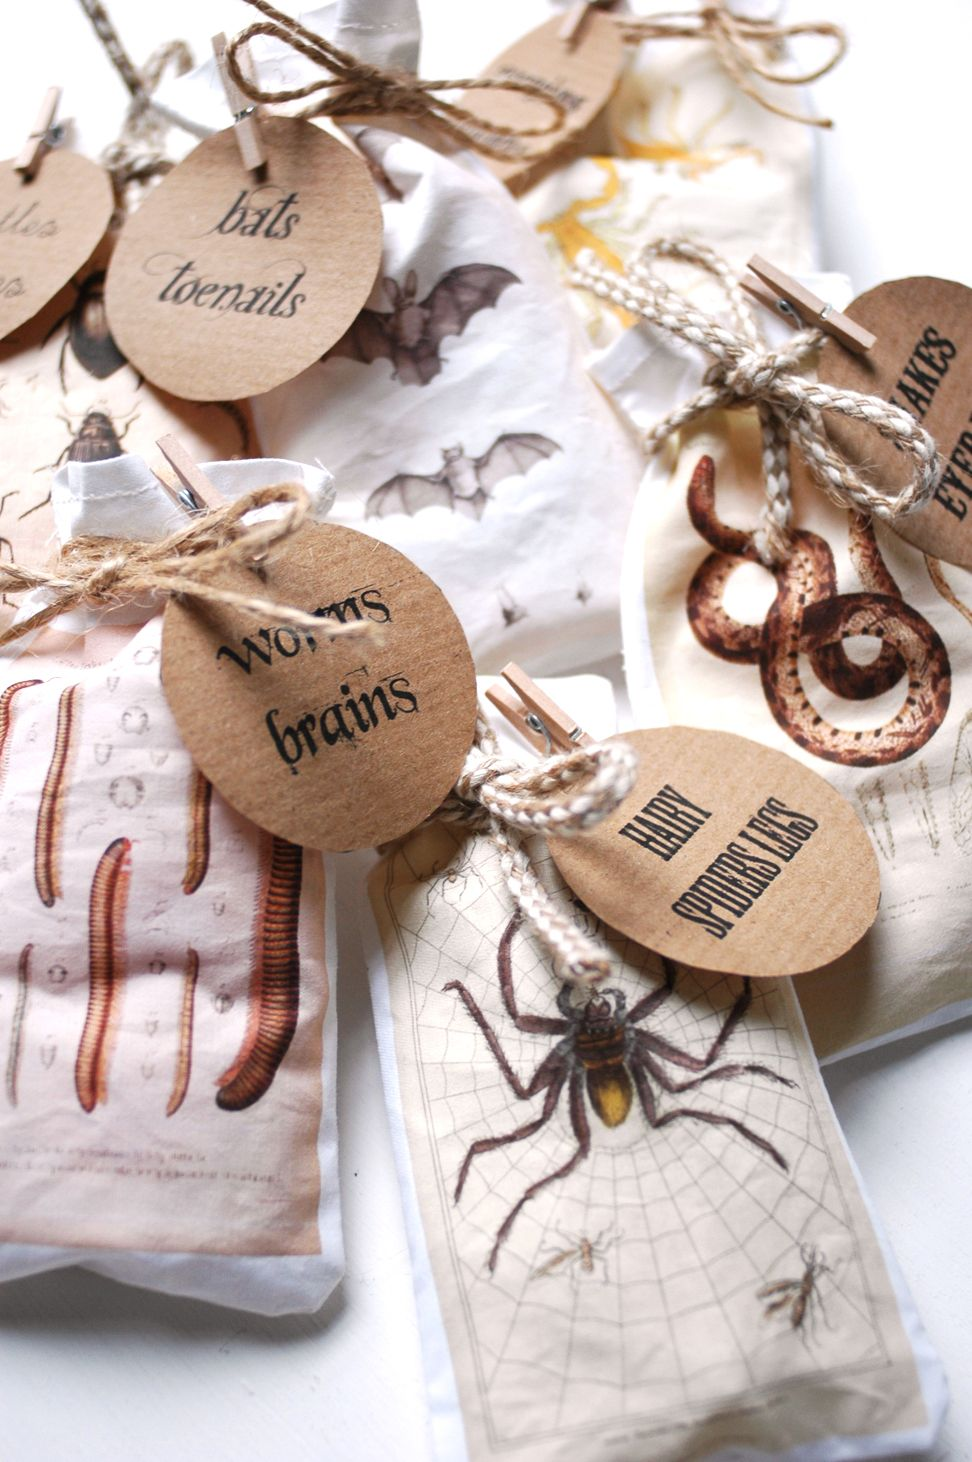 Make these Halloween bags to have the best treats in the